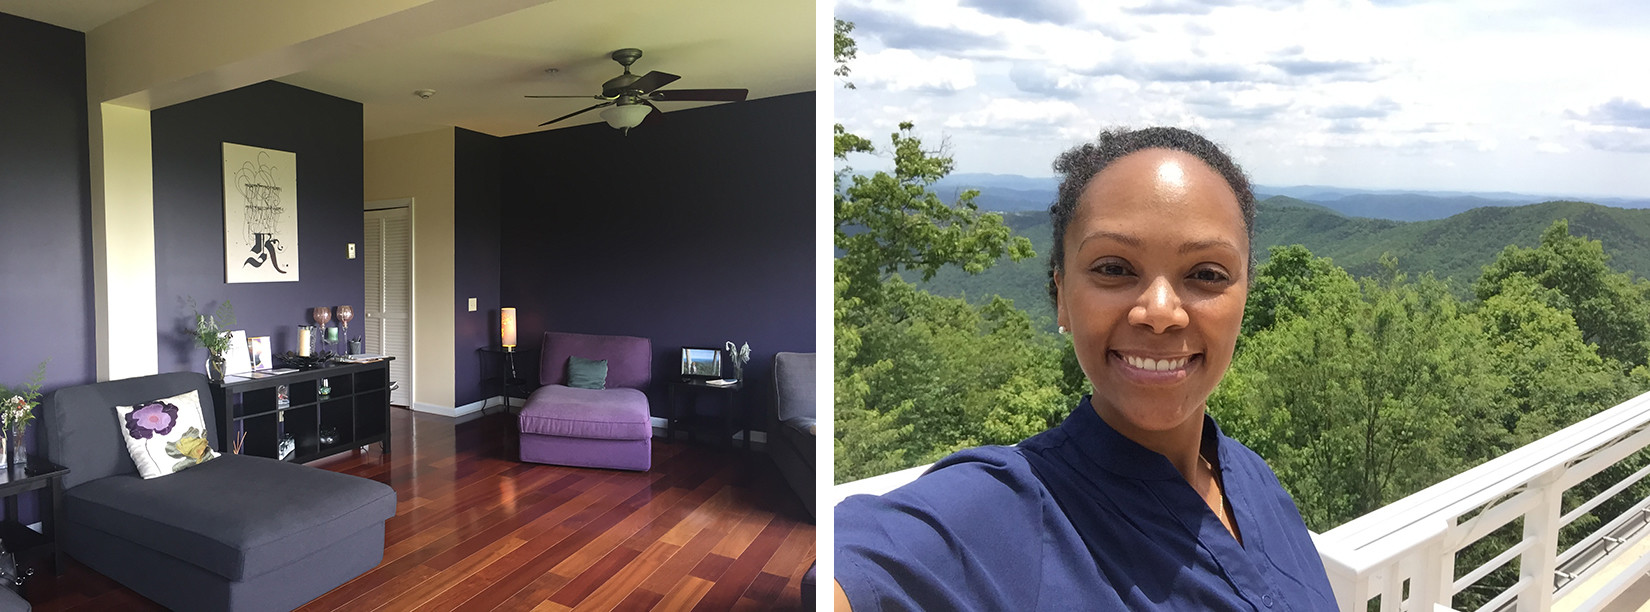 The relaxation room in Shankara Ayurveda Spa at the Art of Living Retreat Center, and Tesia with the Blue Ridge Mountains in Boone, NC where the center is located.